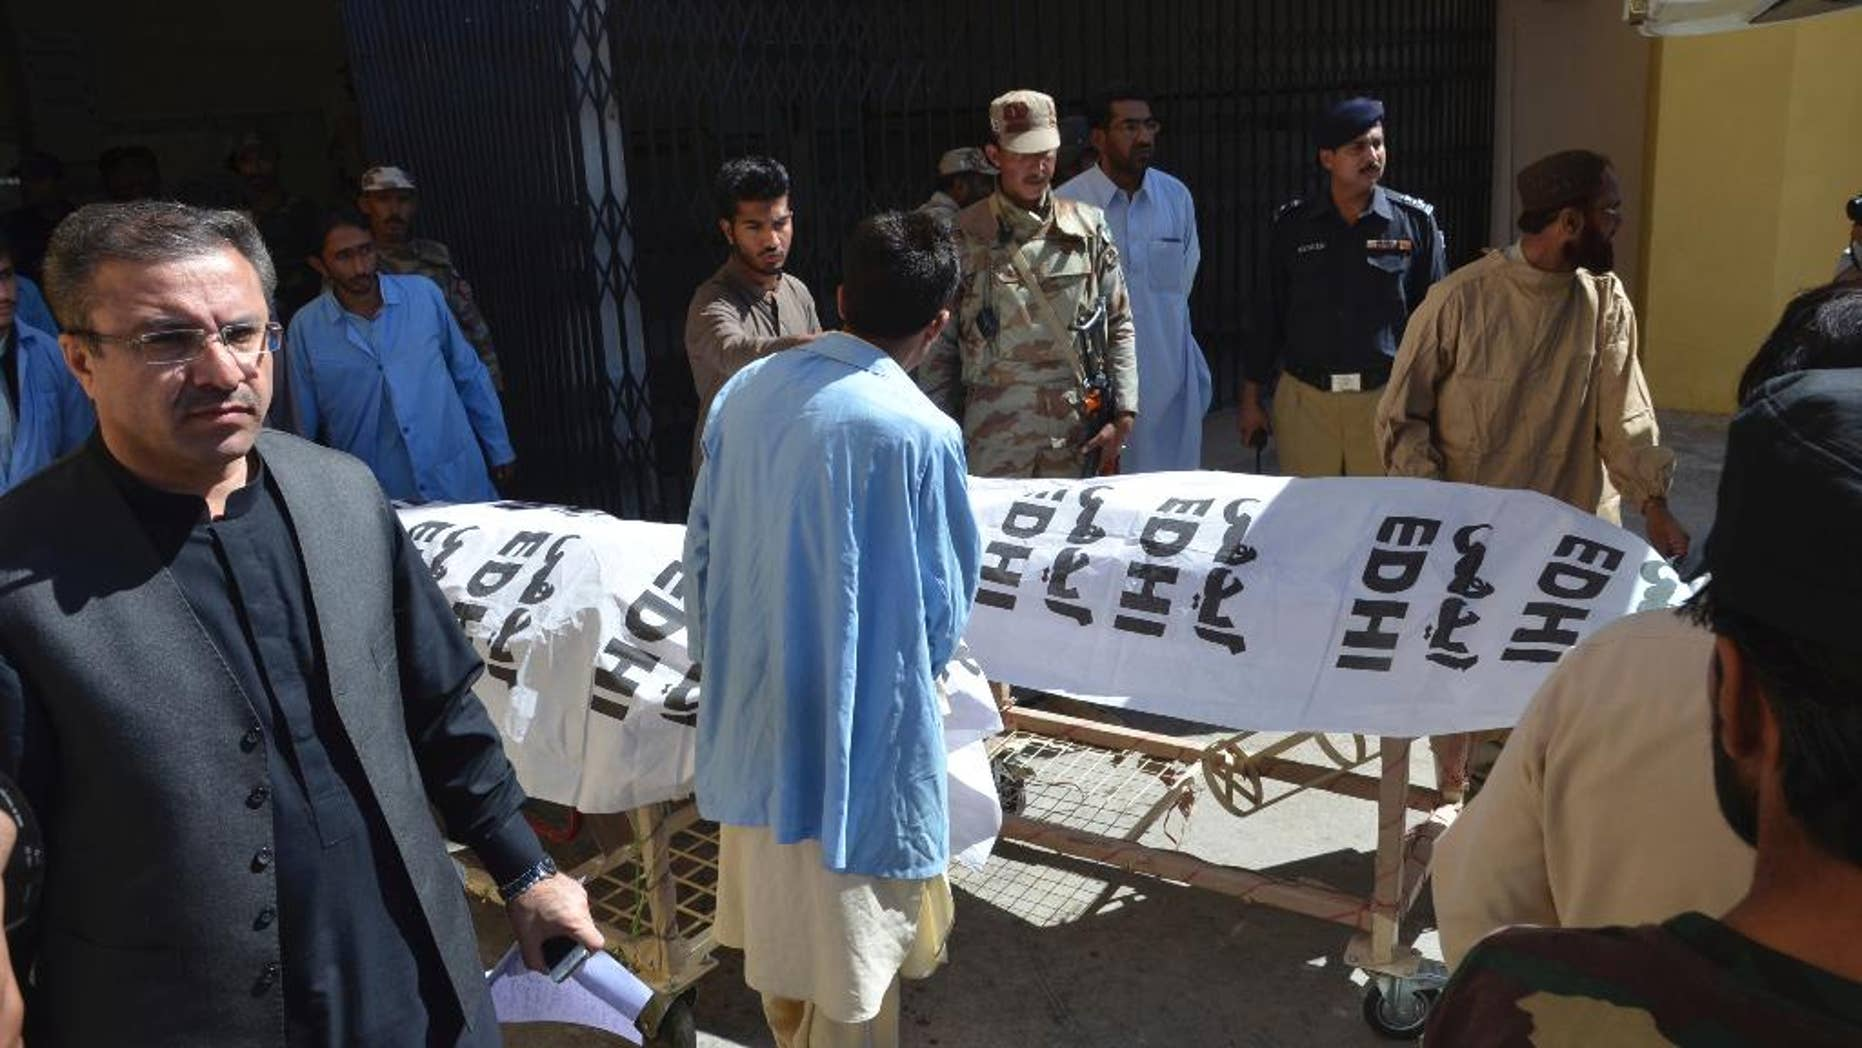 People carry dead bodies of paramilitary officers killed by gunmen in Quetta, Pakistan, Friday, Oct. 14, 20165. Gunmen riding on motorcycles shot and killed three paramilitary officers Friday in the southwestern Pakistani city of Quetta before fleeing, official said. The attack on FC guards, the Islamic State group claimed responsibility for the killing the three guards on street in Quetta, though there is no visible sign of IS in the city. (AP Photo/Arshad Butt)